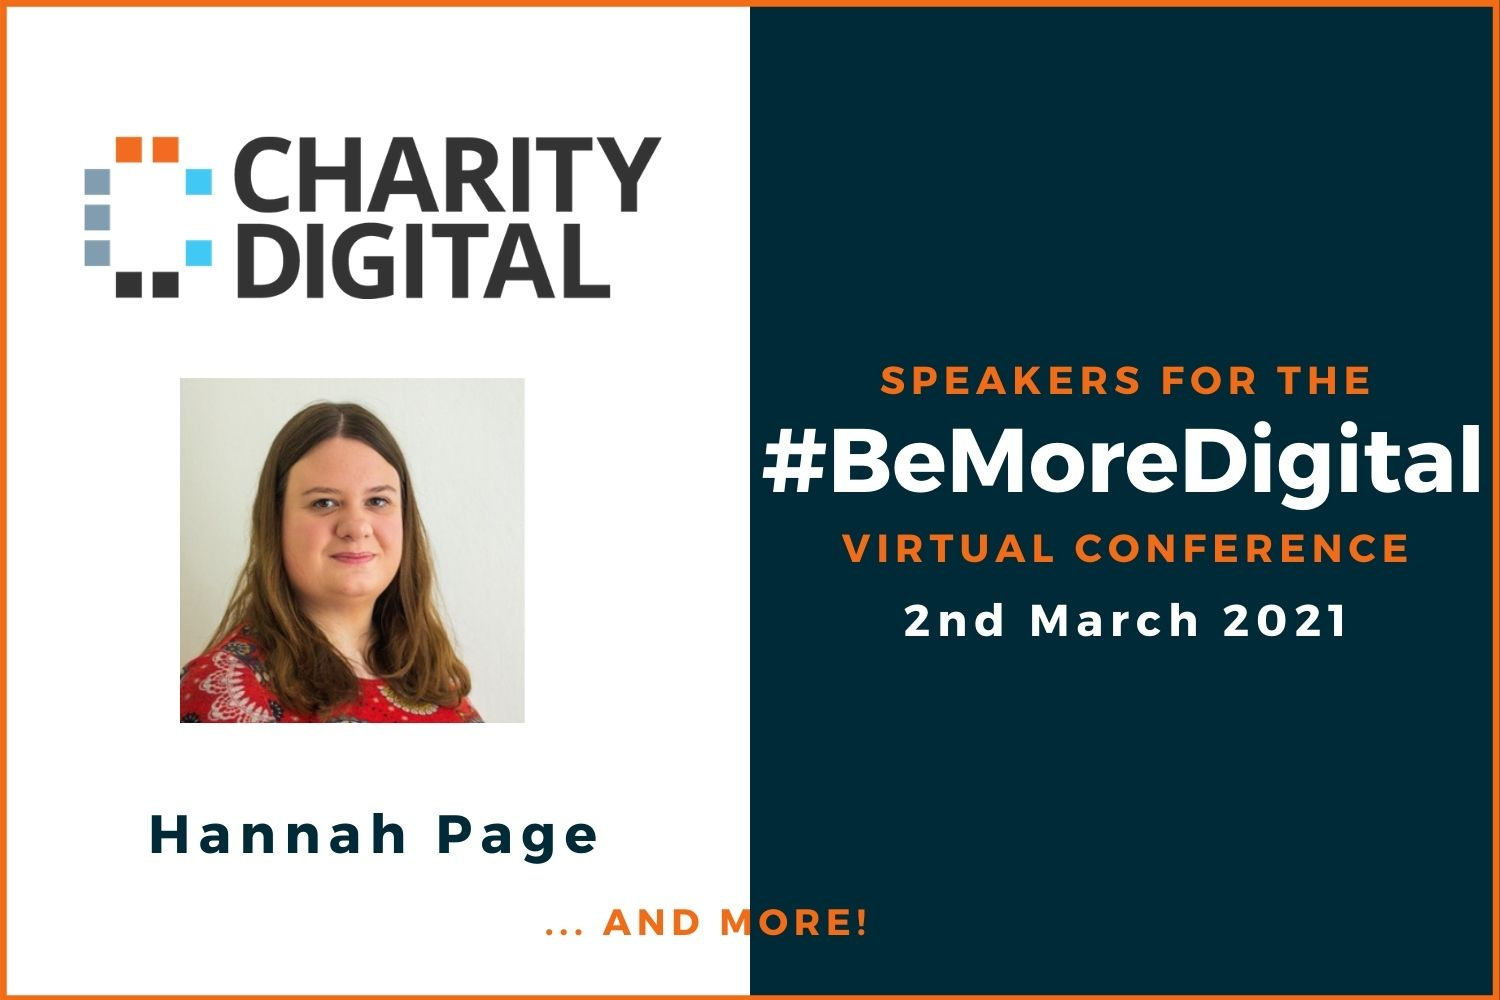 Digital Service Delivery & Operations sessions at the #BeMoreDigital Virtual Conference